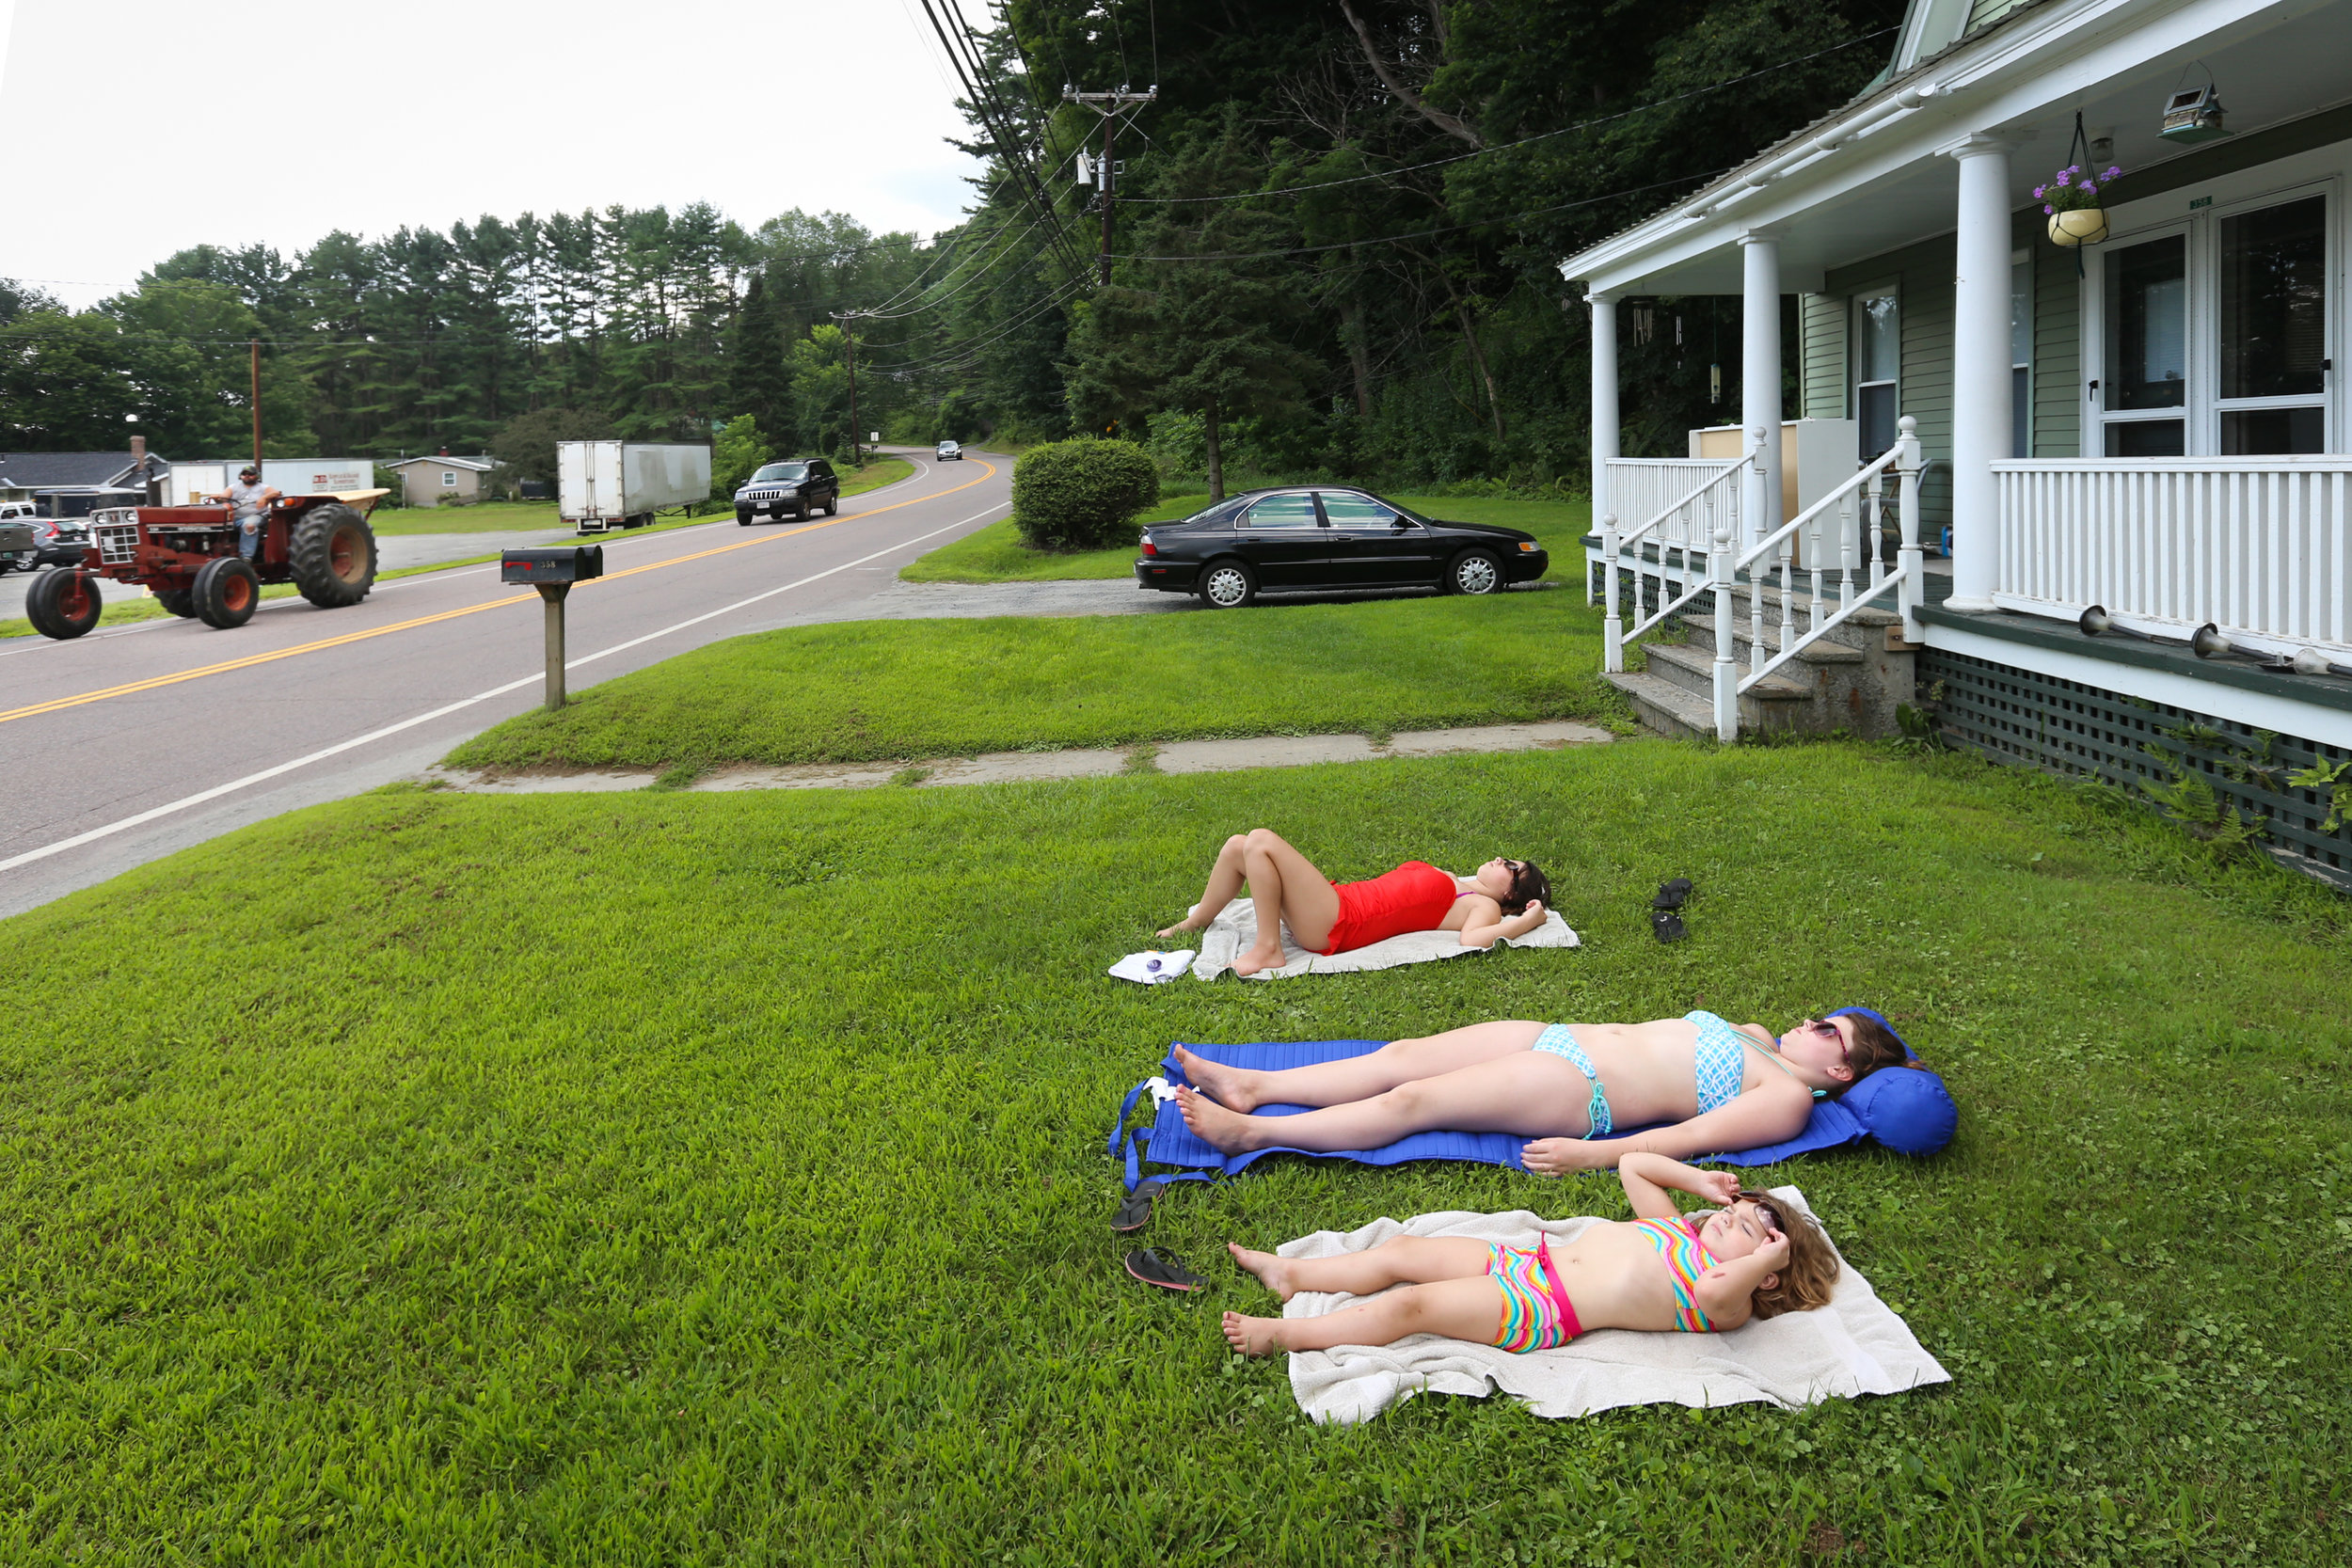 Madison Garrow, Lylah Reynolds, and Sadie Garrow, sunbathe on the front lawn of Reynolds' home in Windsor, Vermont